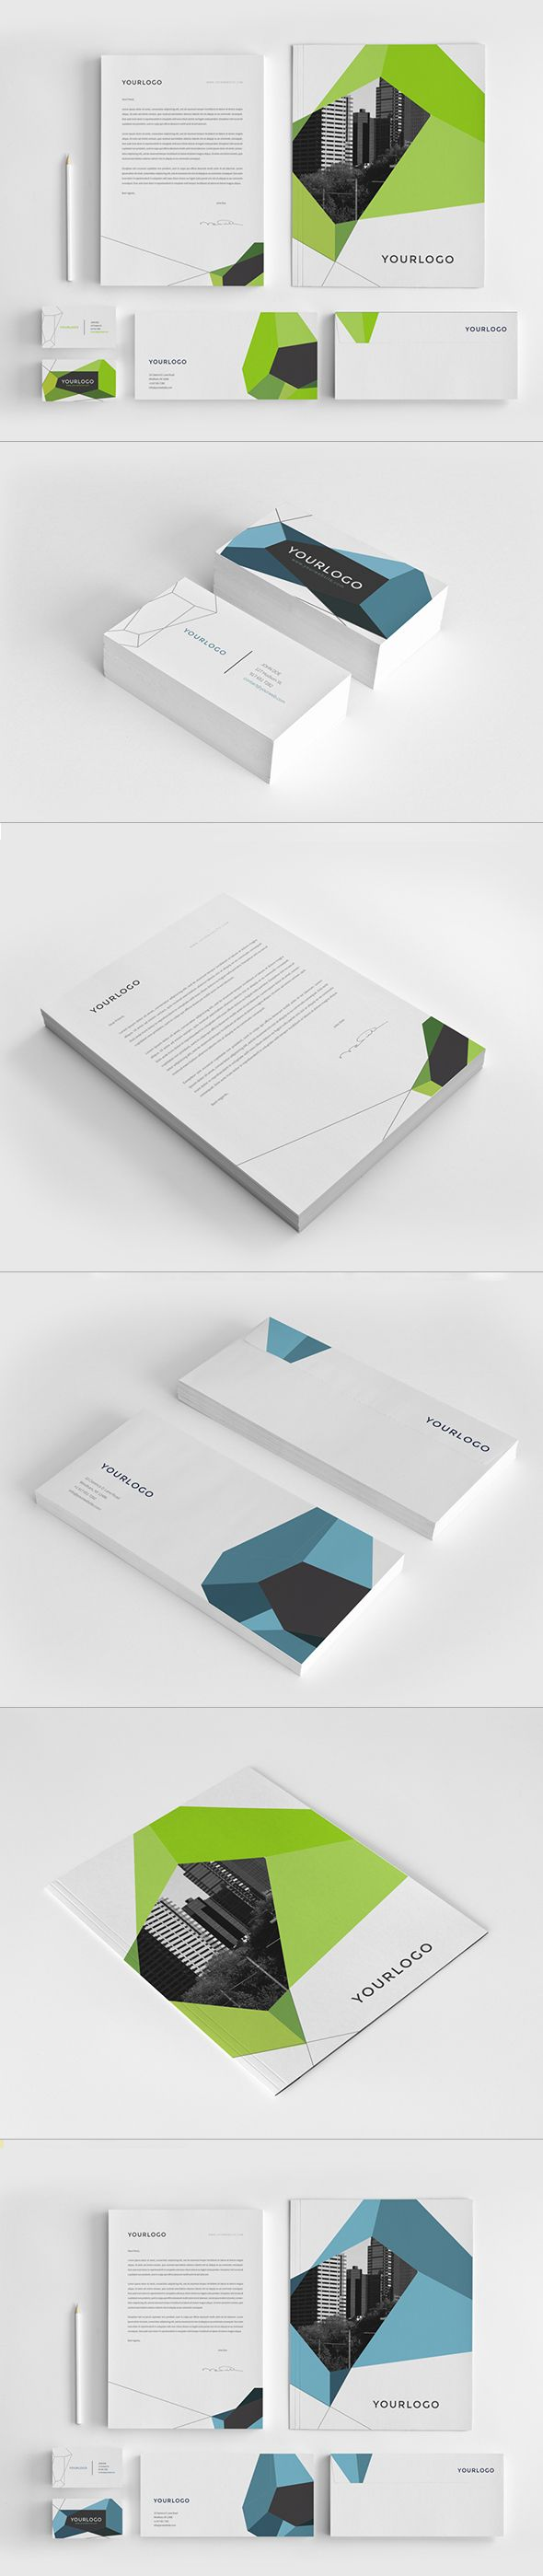 Modern Geometric Stationery Pack. Download here: http://graphicriver.net/item/modern-geometric-stationery-pack/7596186?ref=abradesign #design #stationery